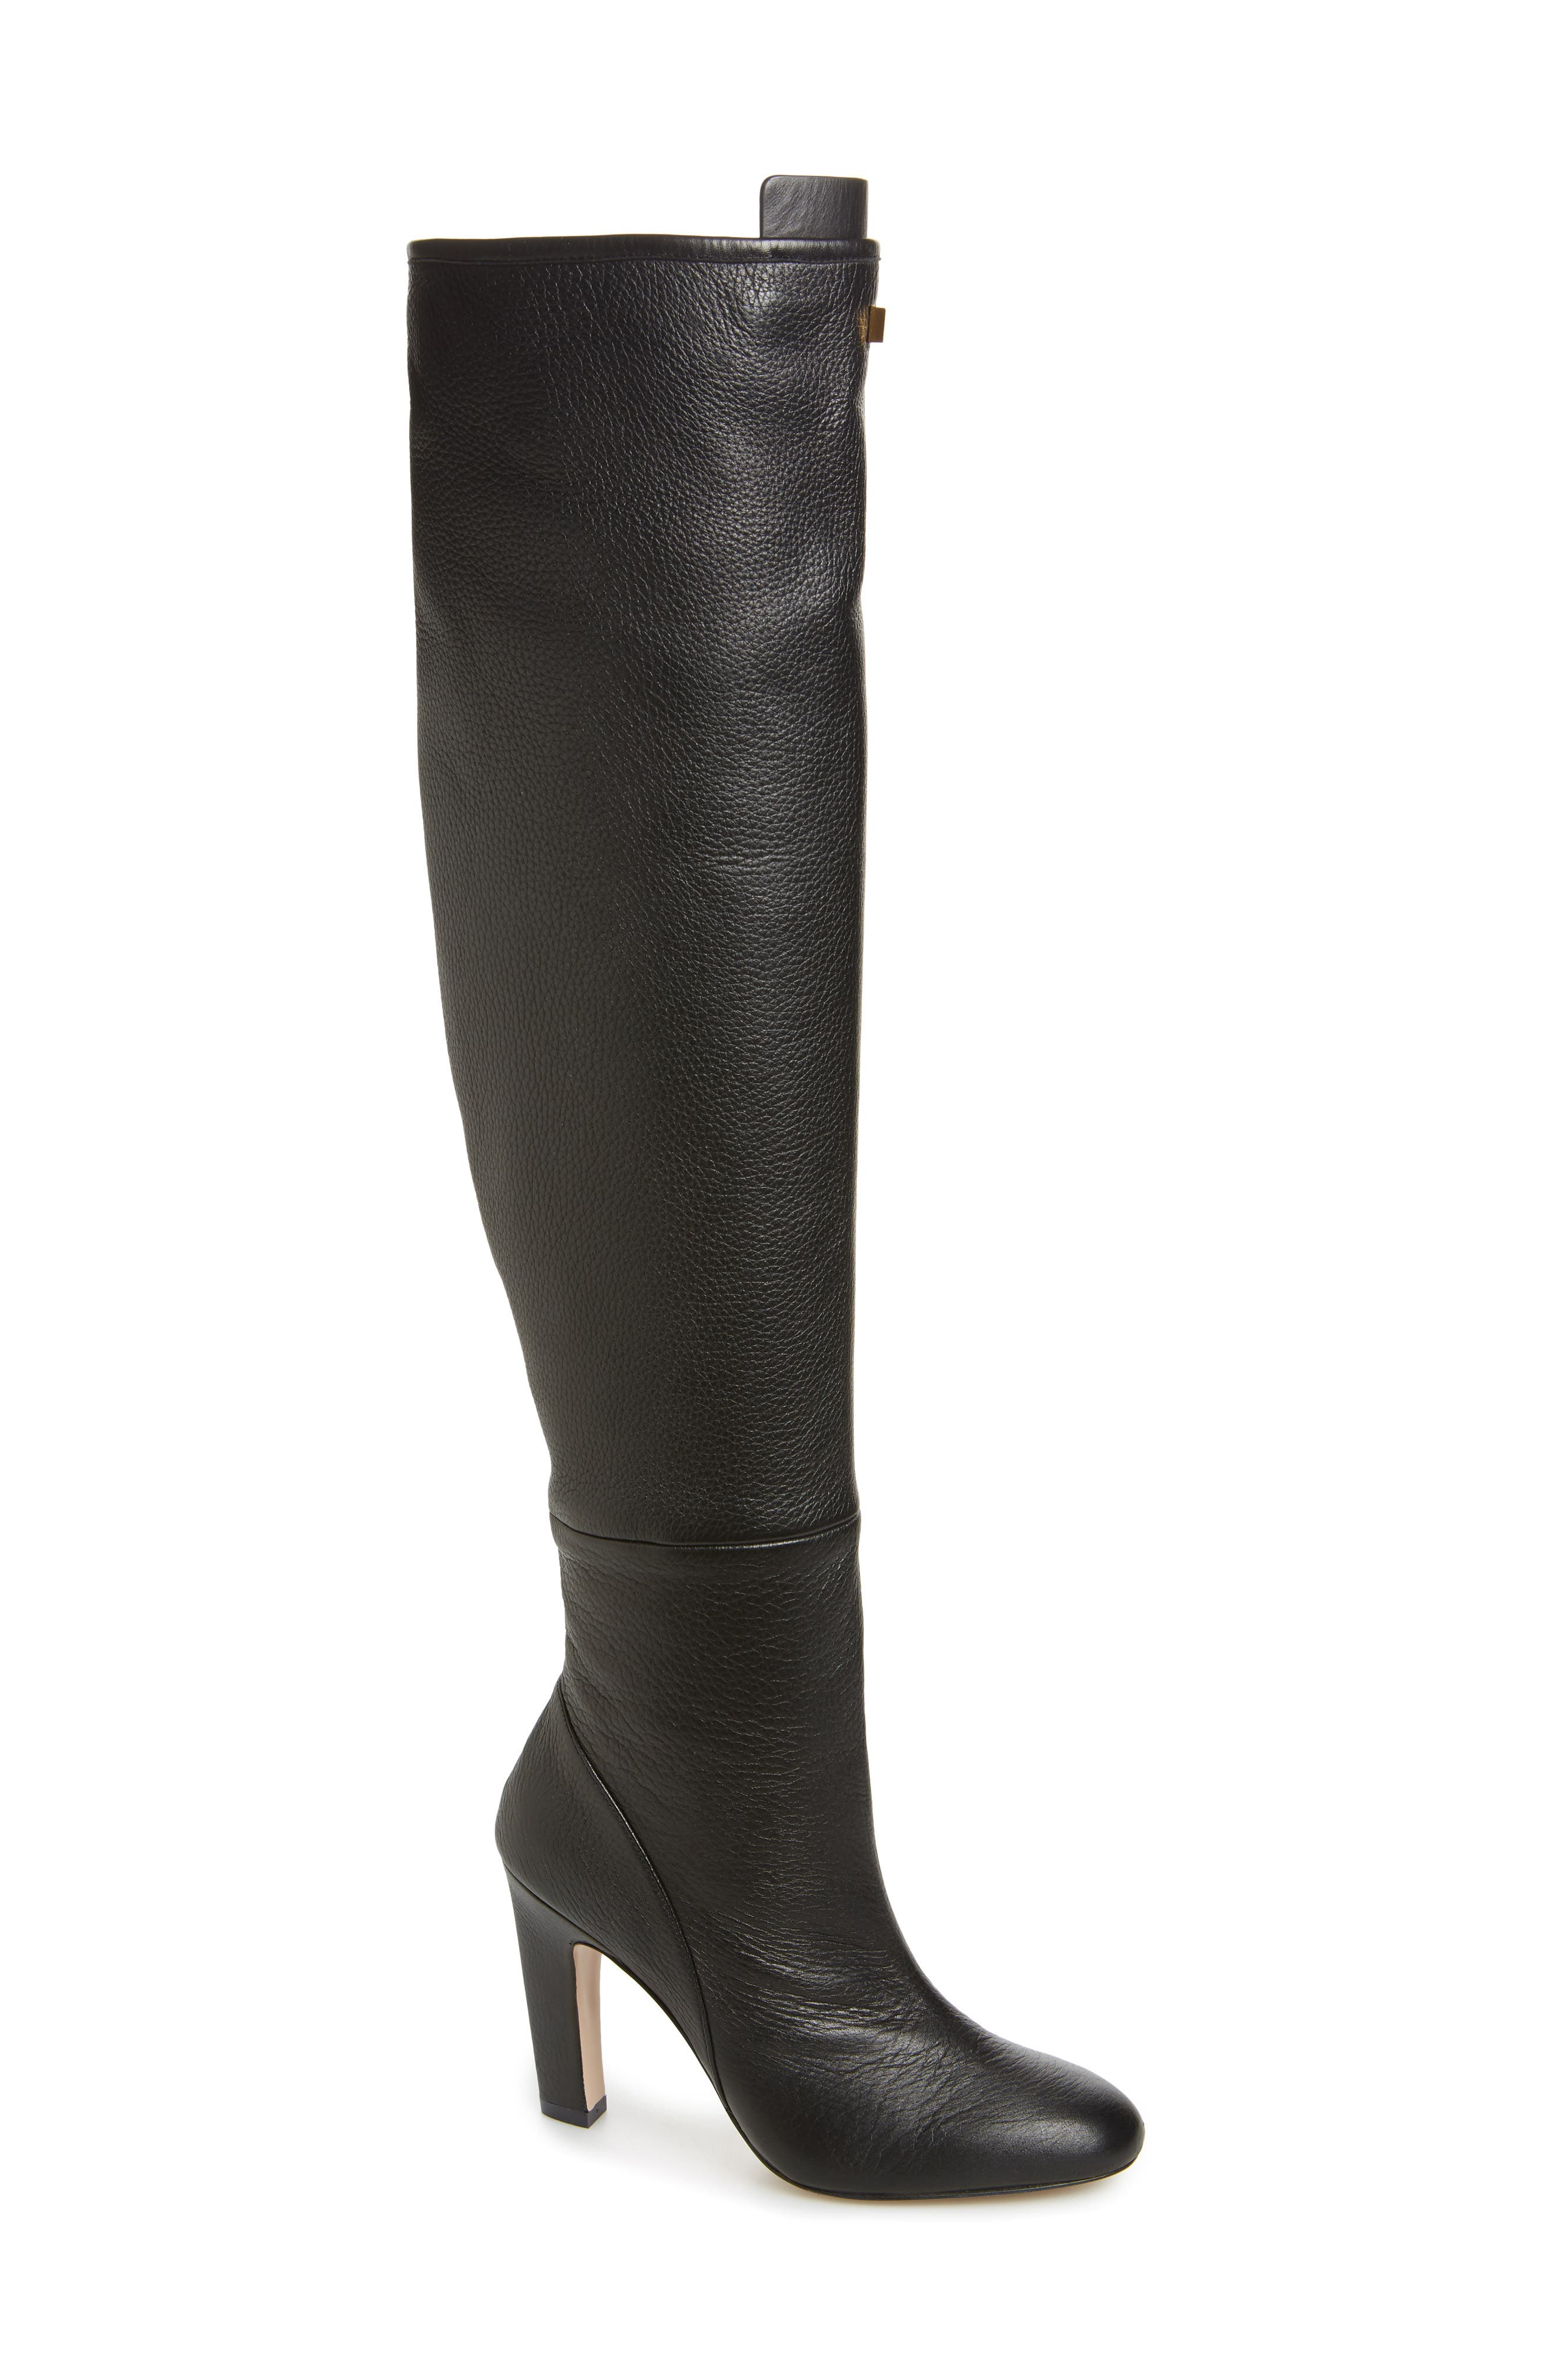 Edie Over the Knee Boot,                         Main,                         color, PITCH BLACK GHENTO